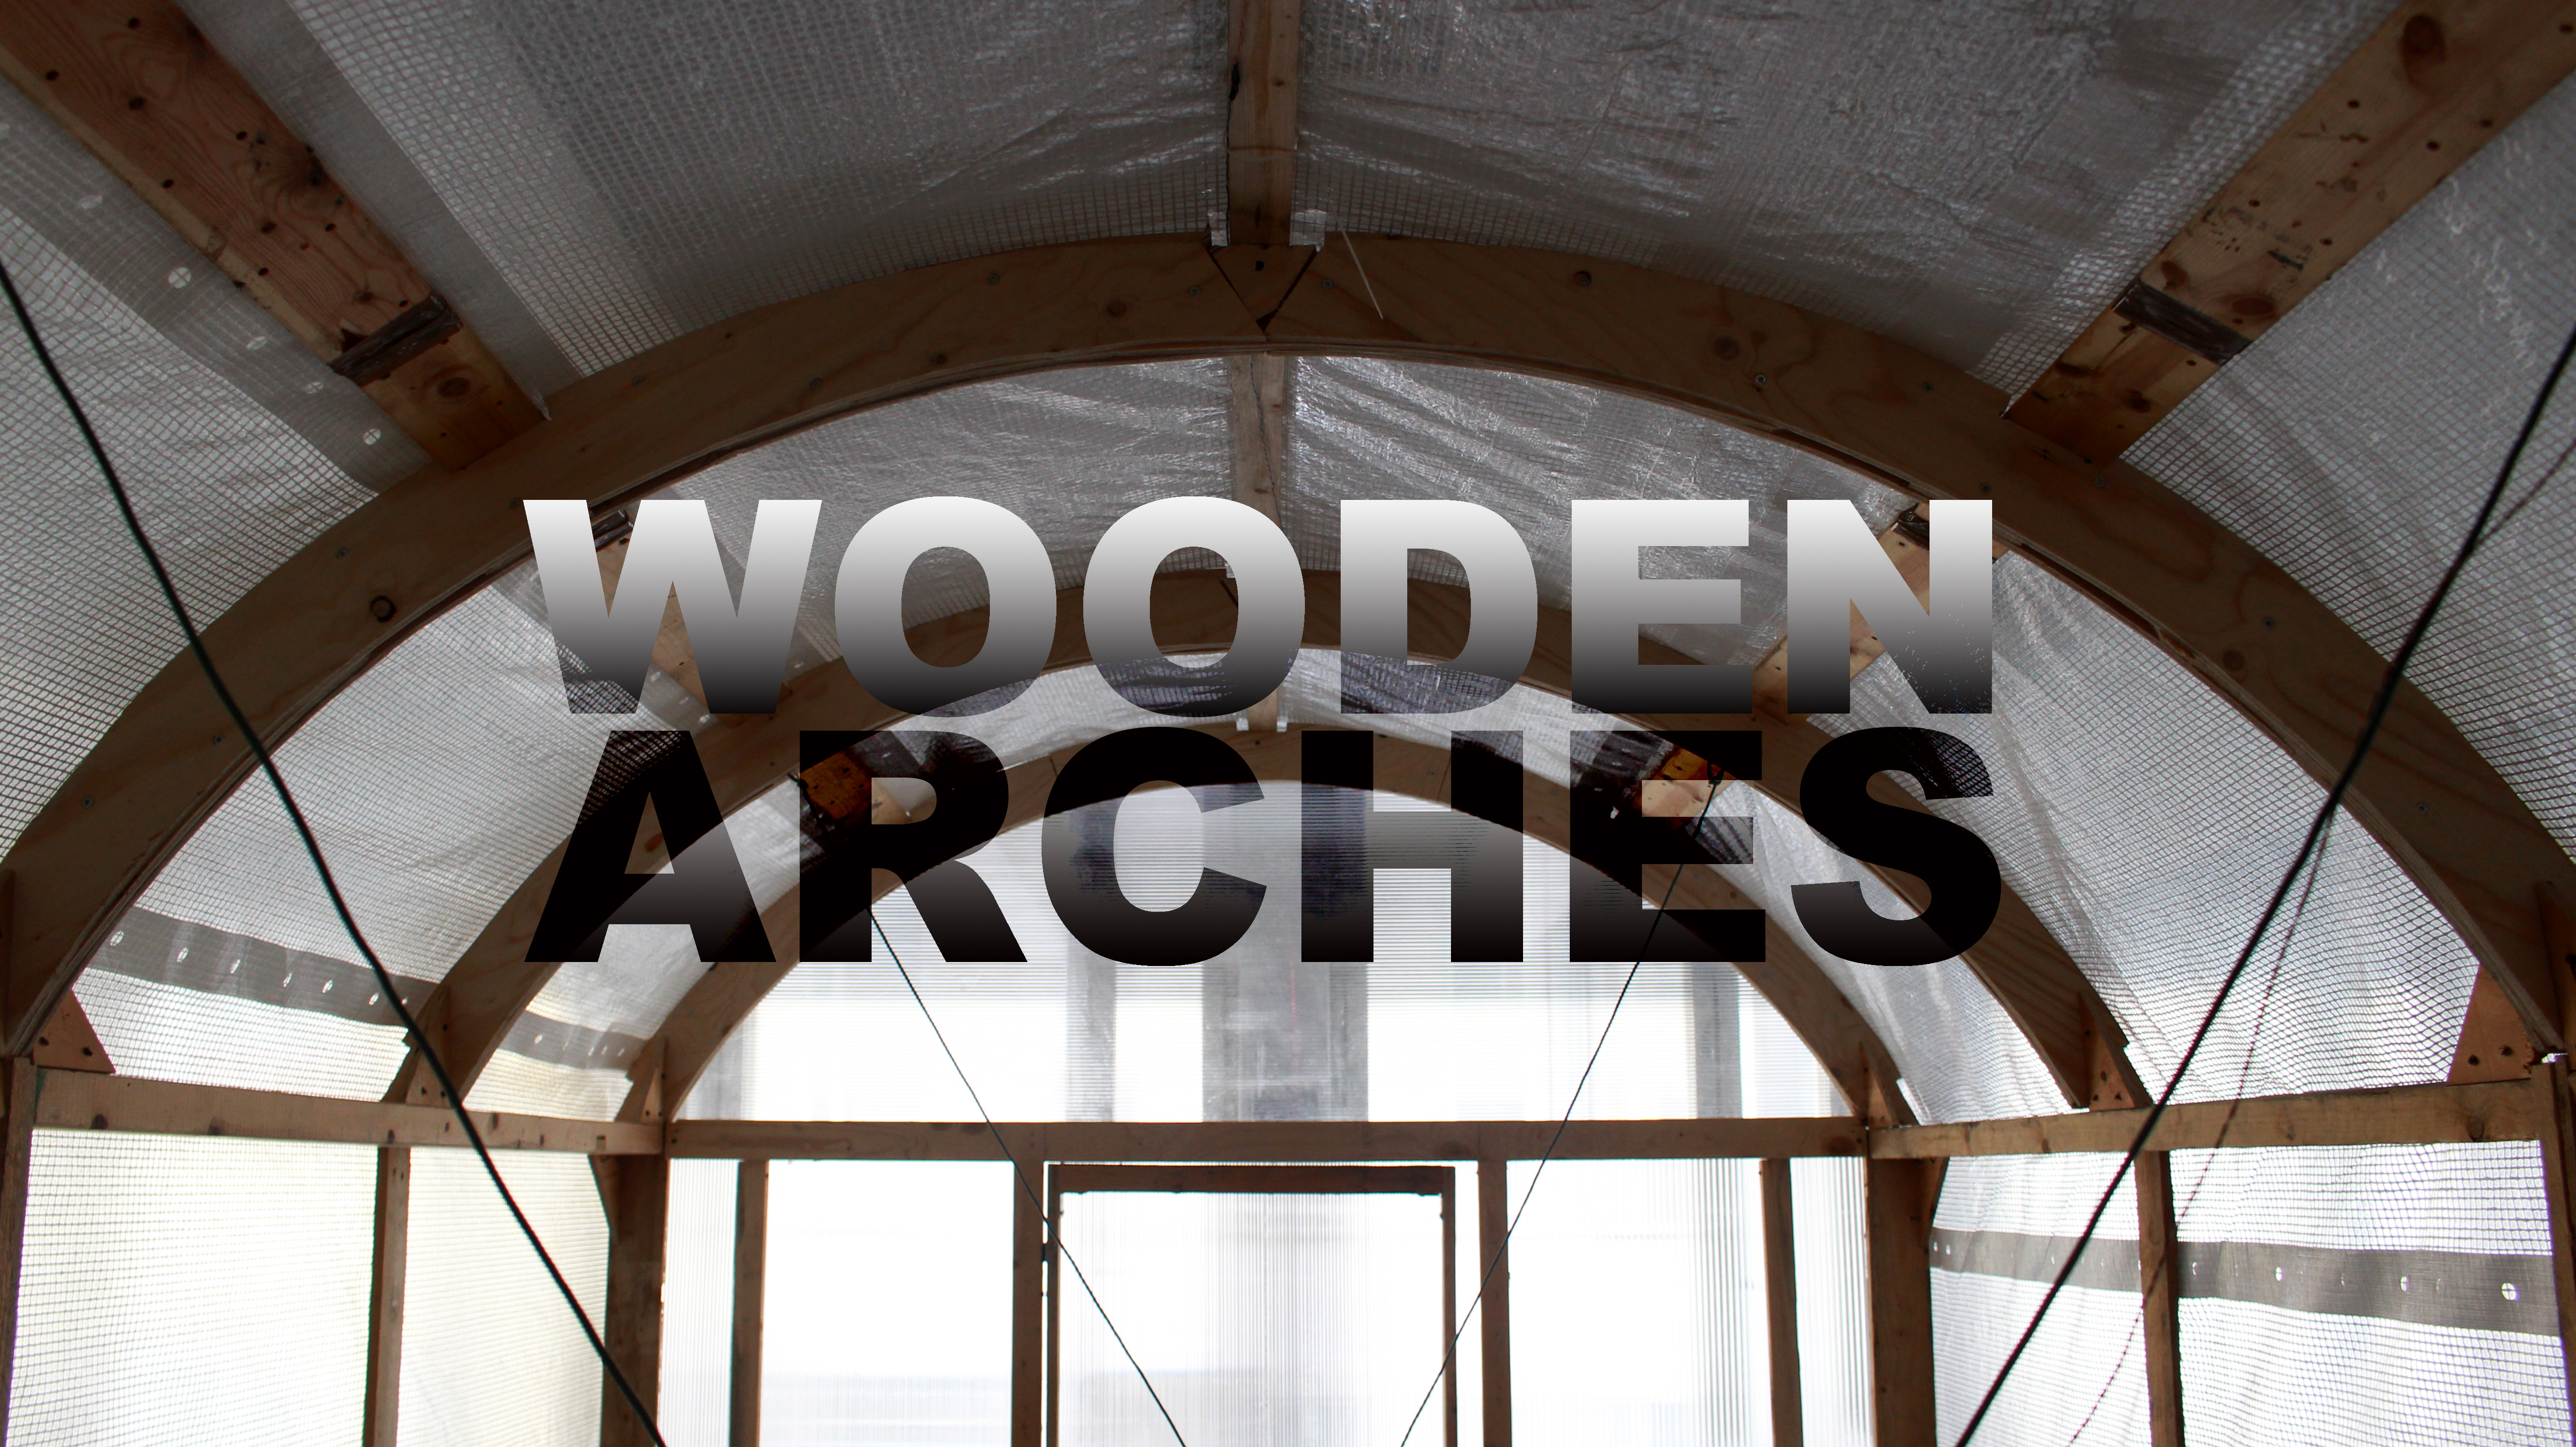 Picture of Wooden Arches